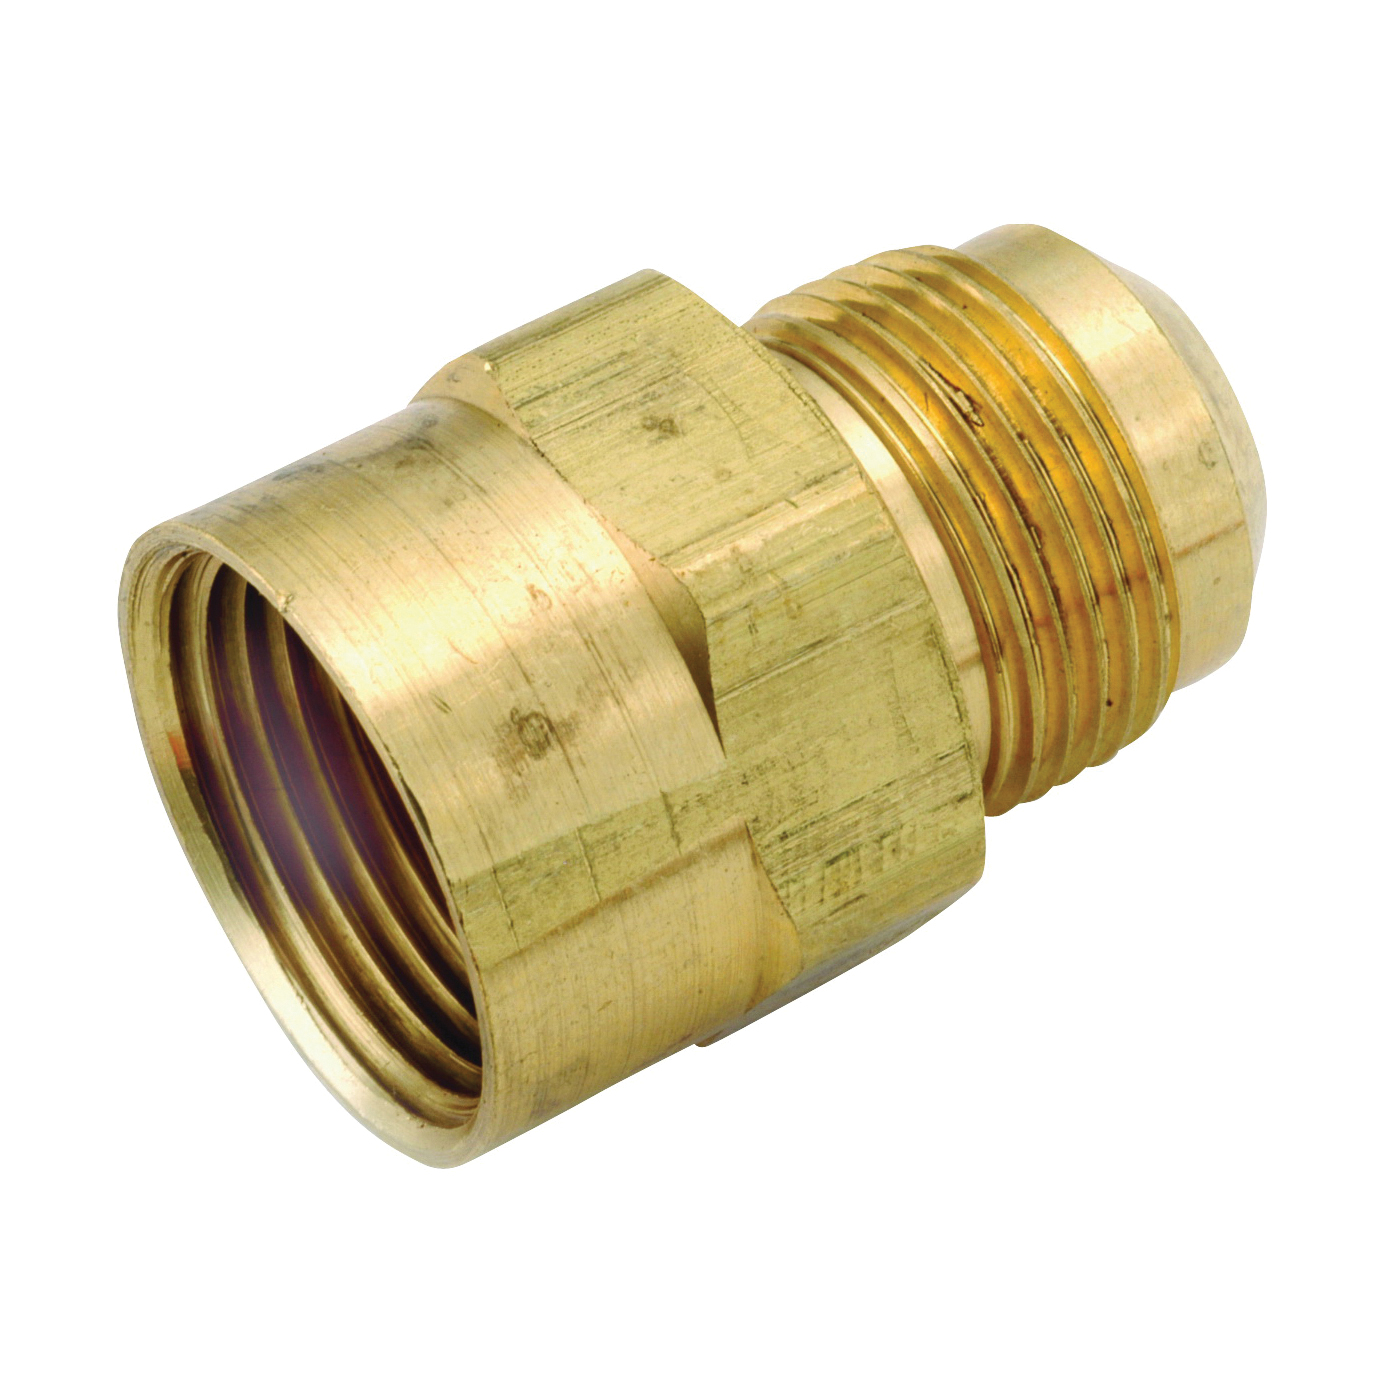 Picture of Anderson Metals 54746-1512 Pipe Coupler, 15/16 x 3/4 in, Flare x FIP, Brass